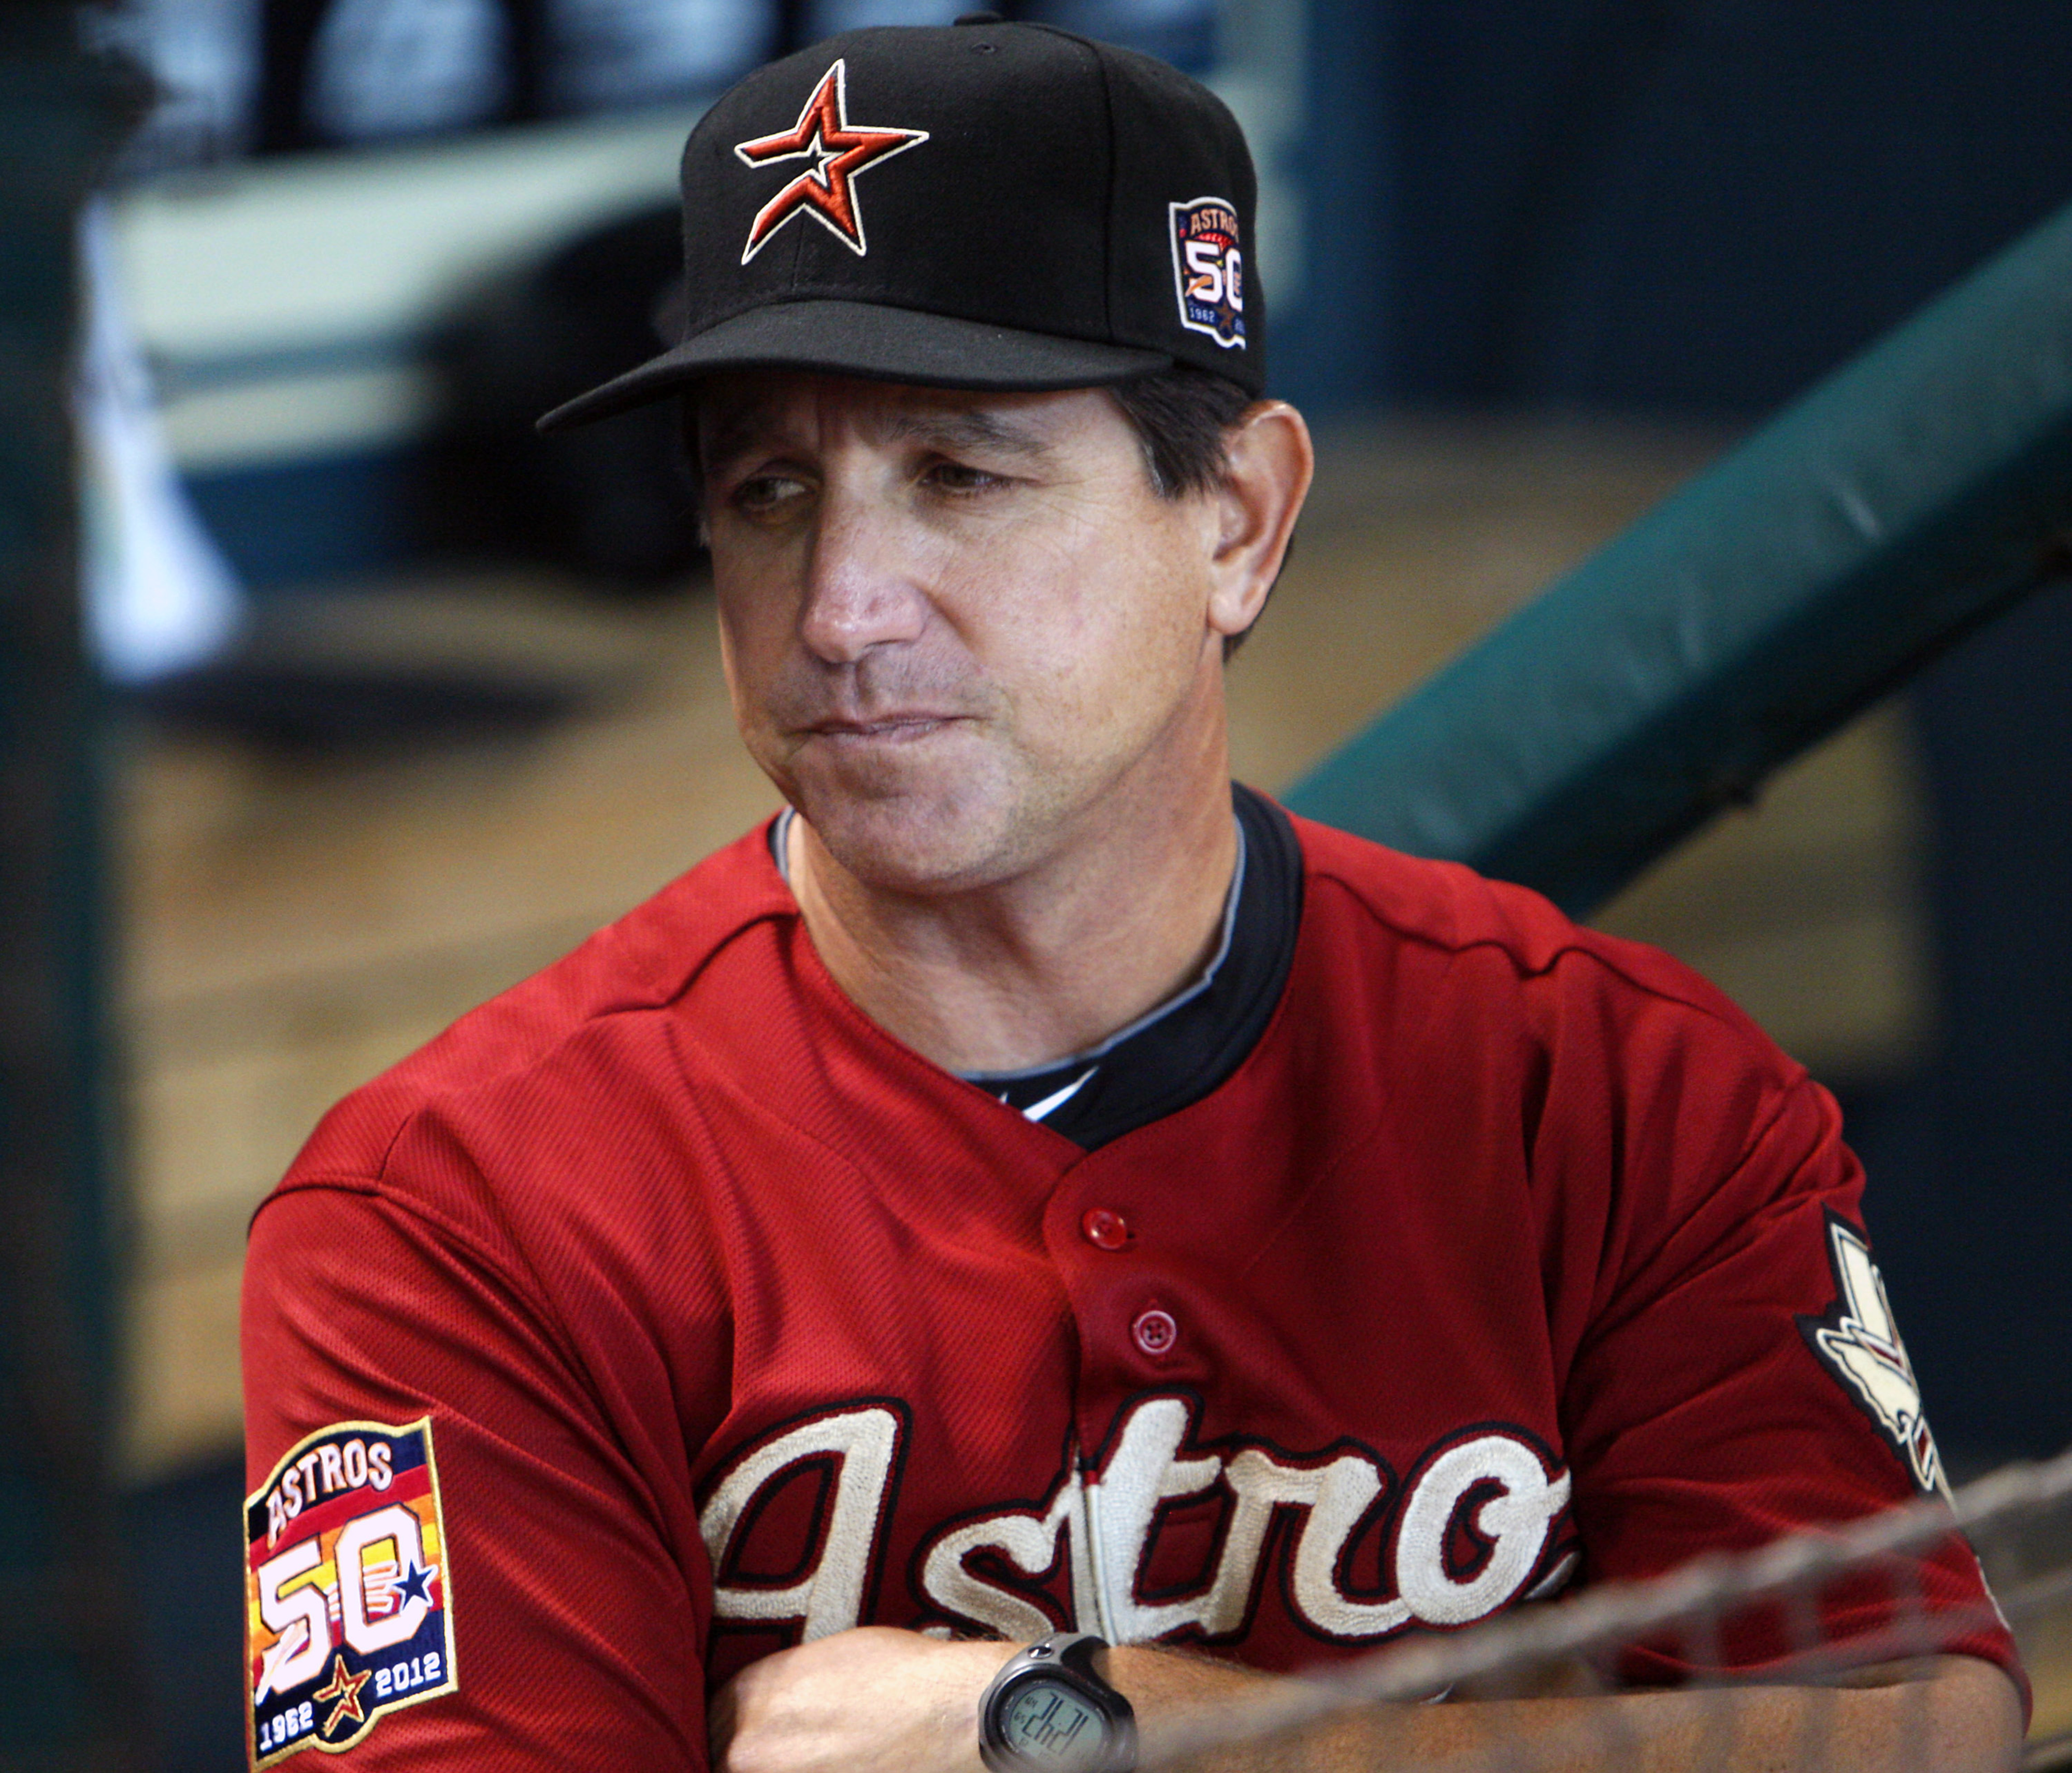 HOUSTON, TX - AUGUST 19:  Interim manager Tony DeFrancesco #11 makes his first appearance in an Astros uniform as he comes out of the lockeroom at Minute Maid Park on August 19, 2012 in Houston, Texas.  (Photo by Bob Levey/Getty Images)